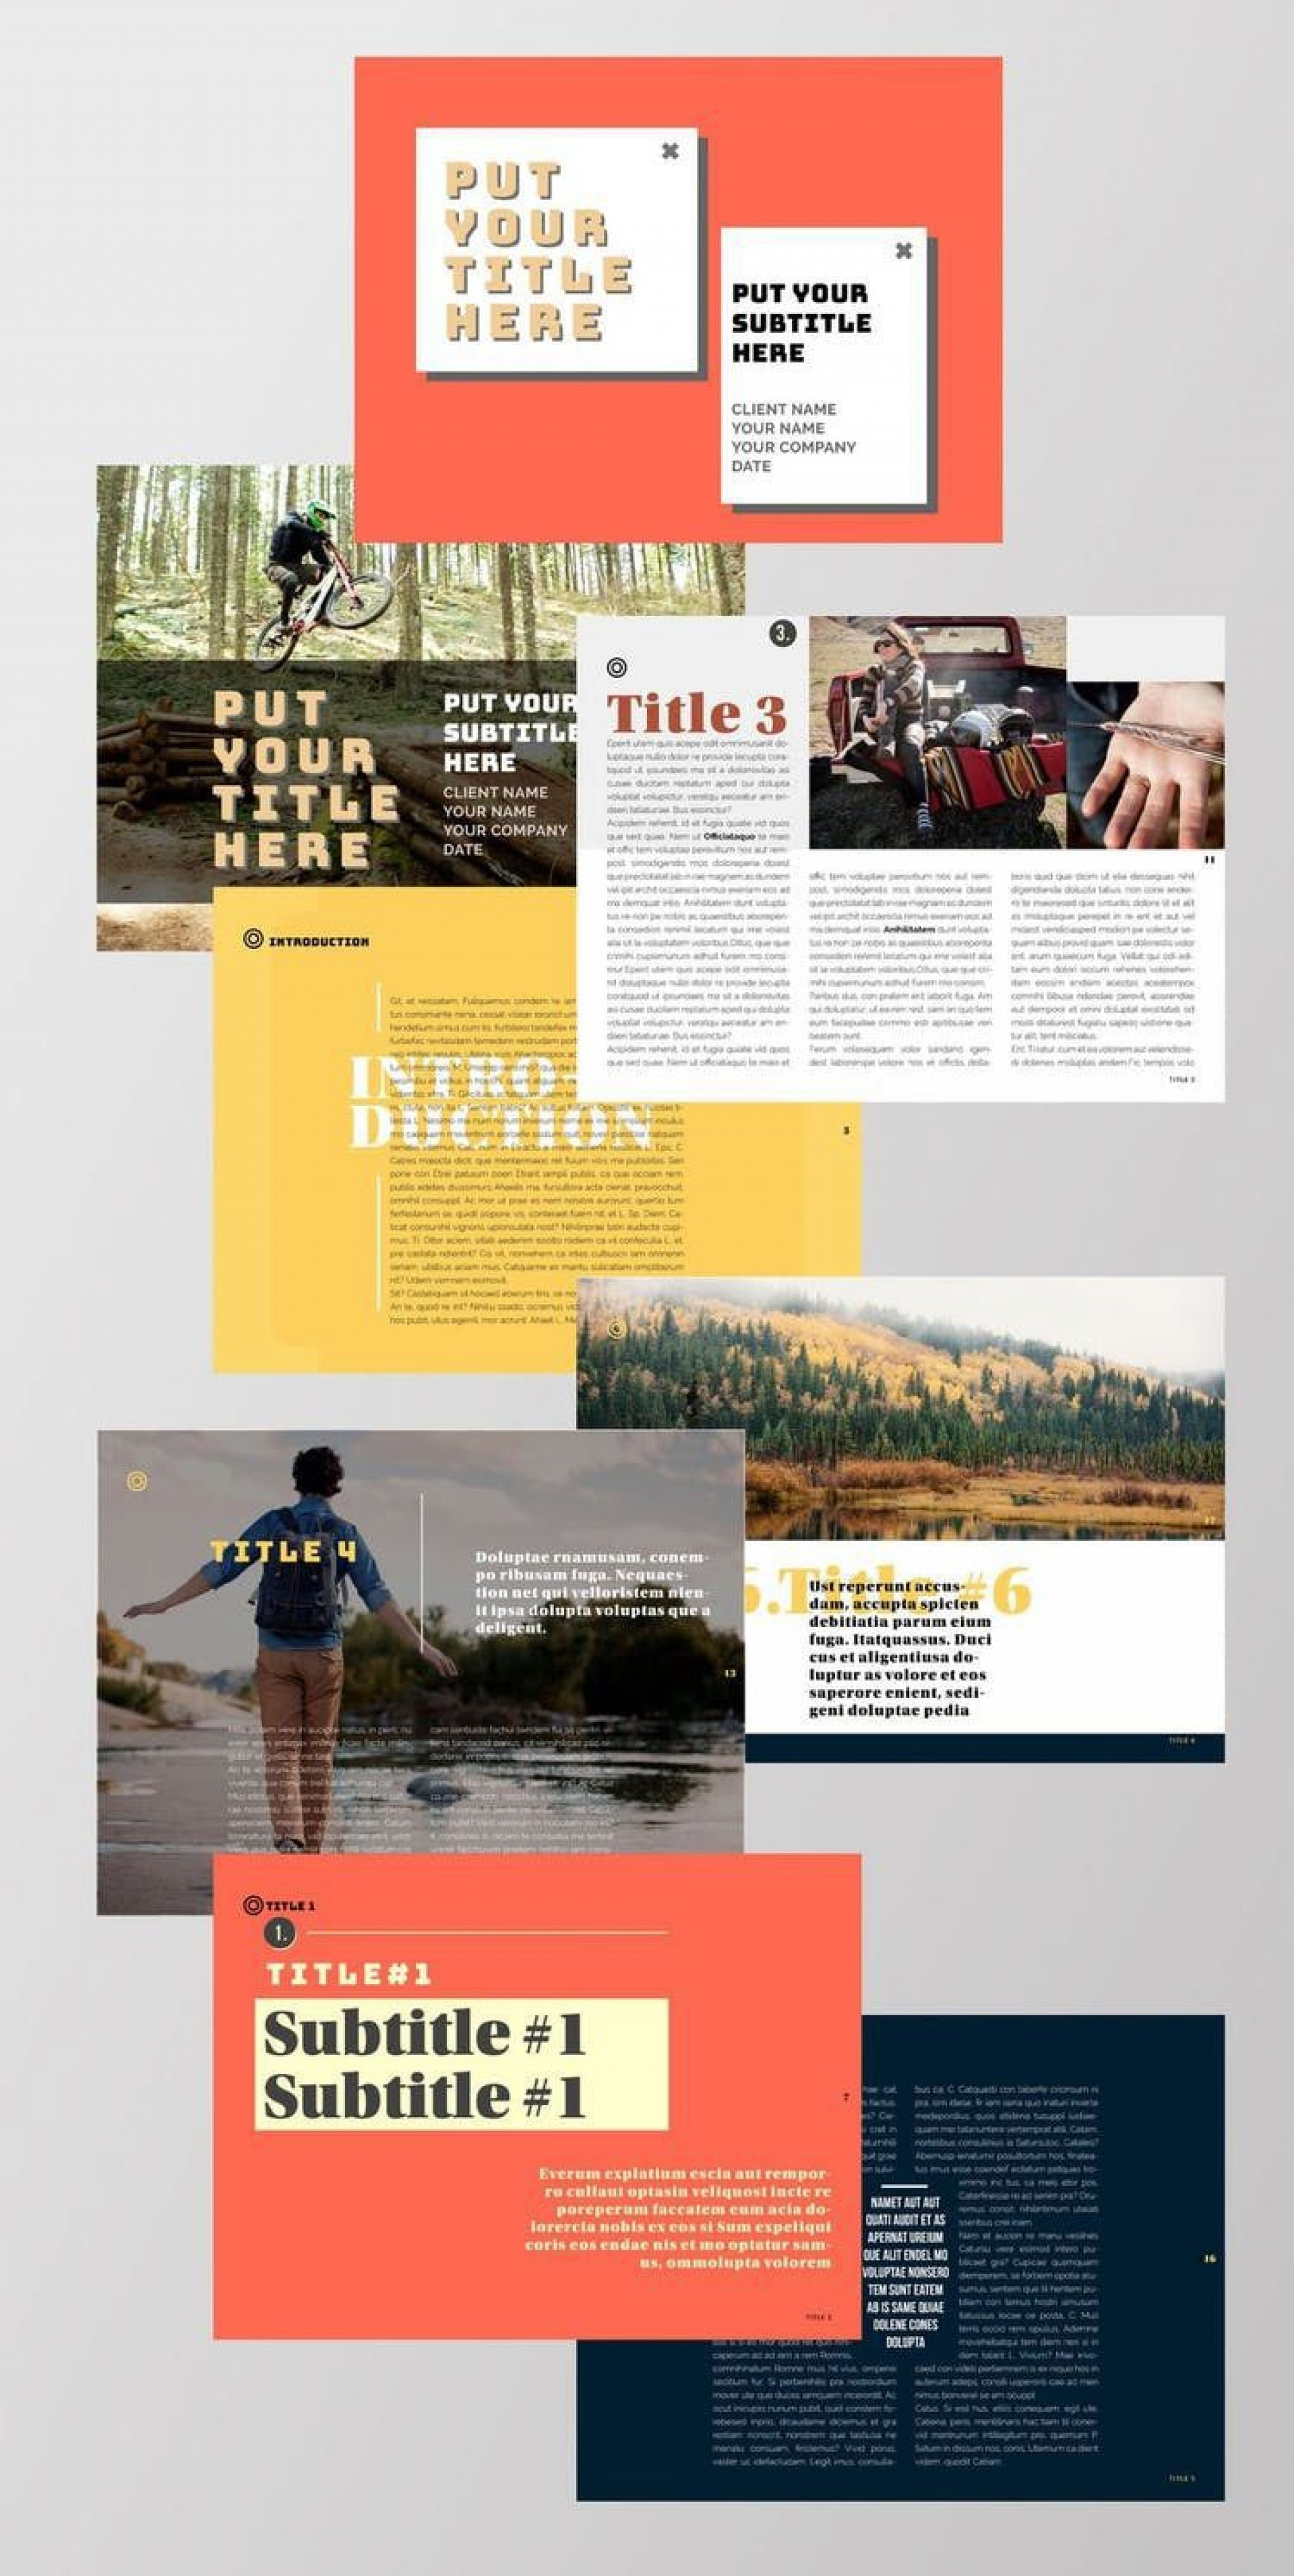 005 Magnificent School Magazine Layout Template Free Download Concept 1920